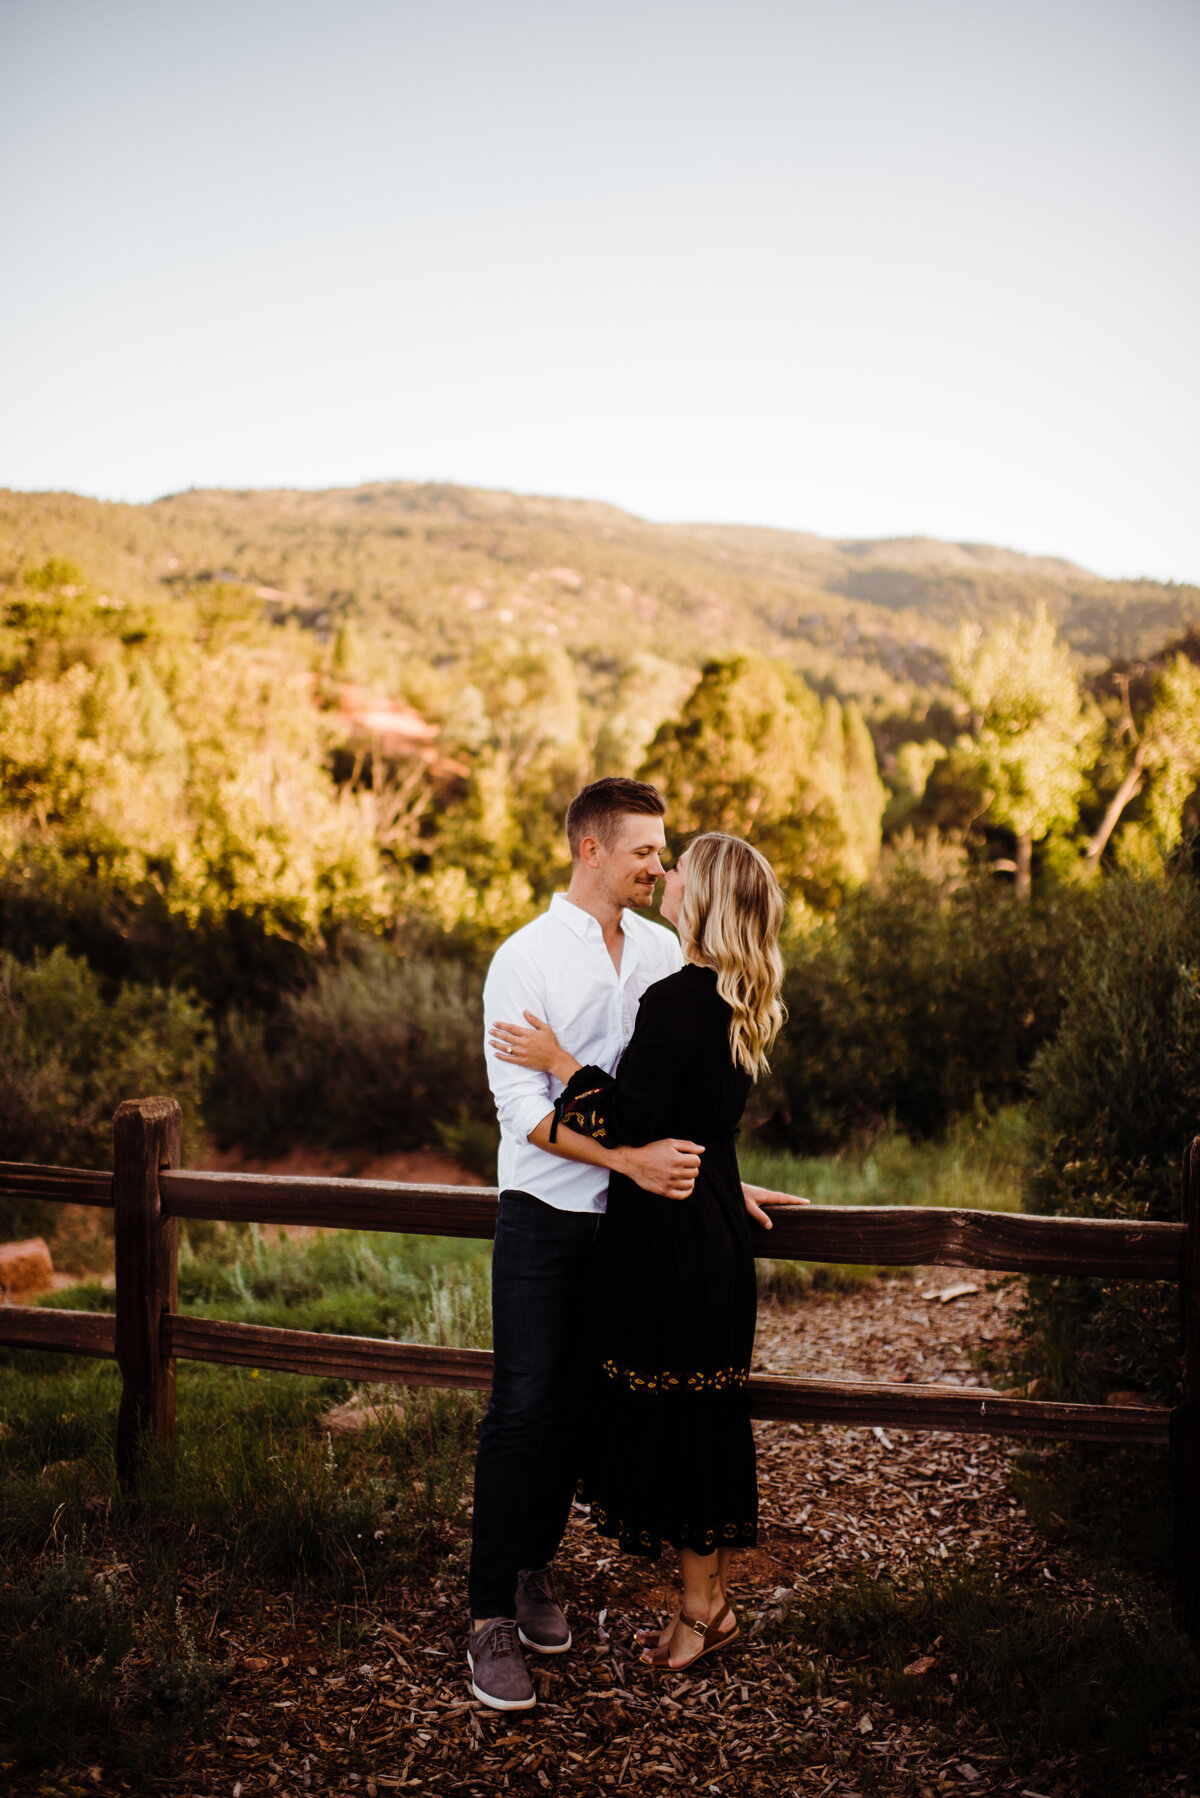 Sunrise engagement session at Garden of the Gods - Randy and Ashley Studios - Ben and Rachel-115